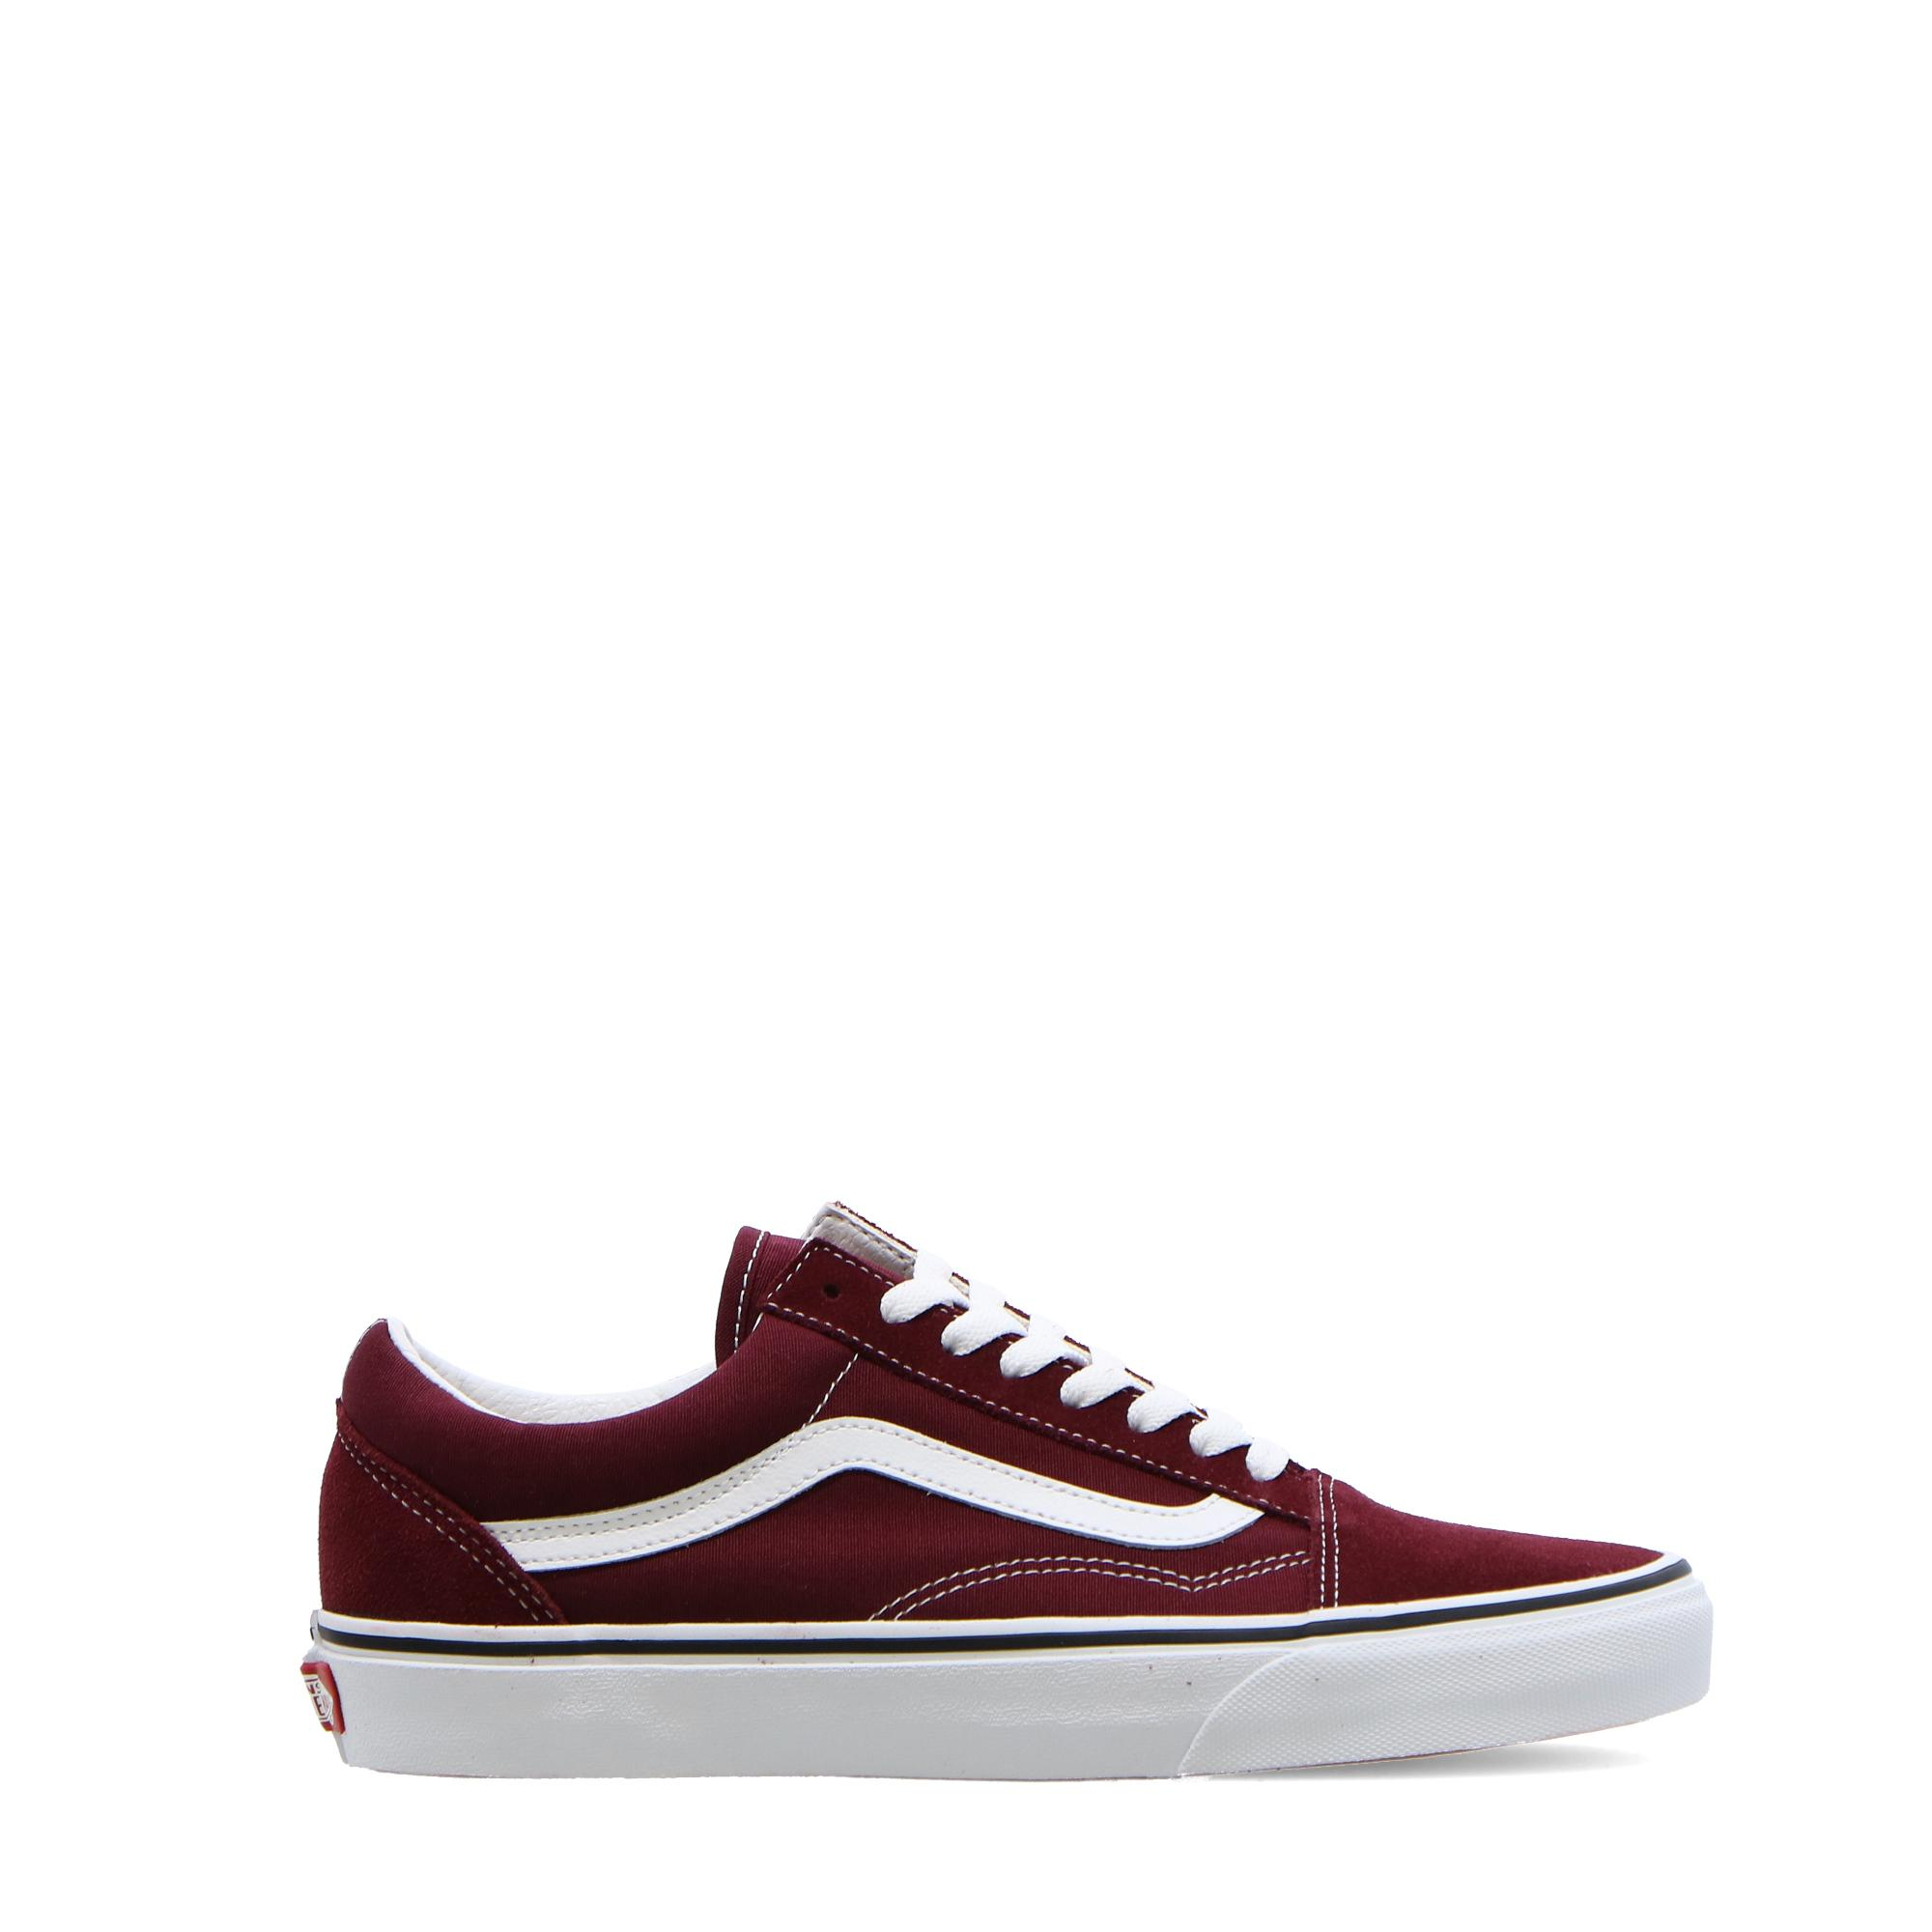 Vans Ua Old Skool Port royale true white